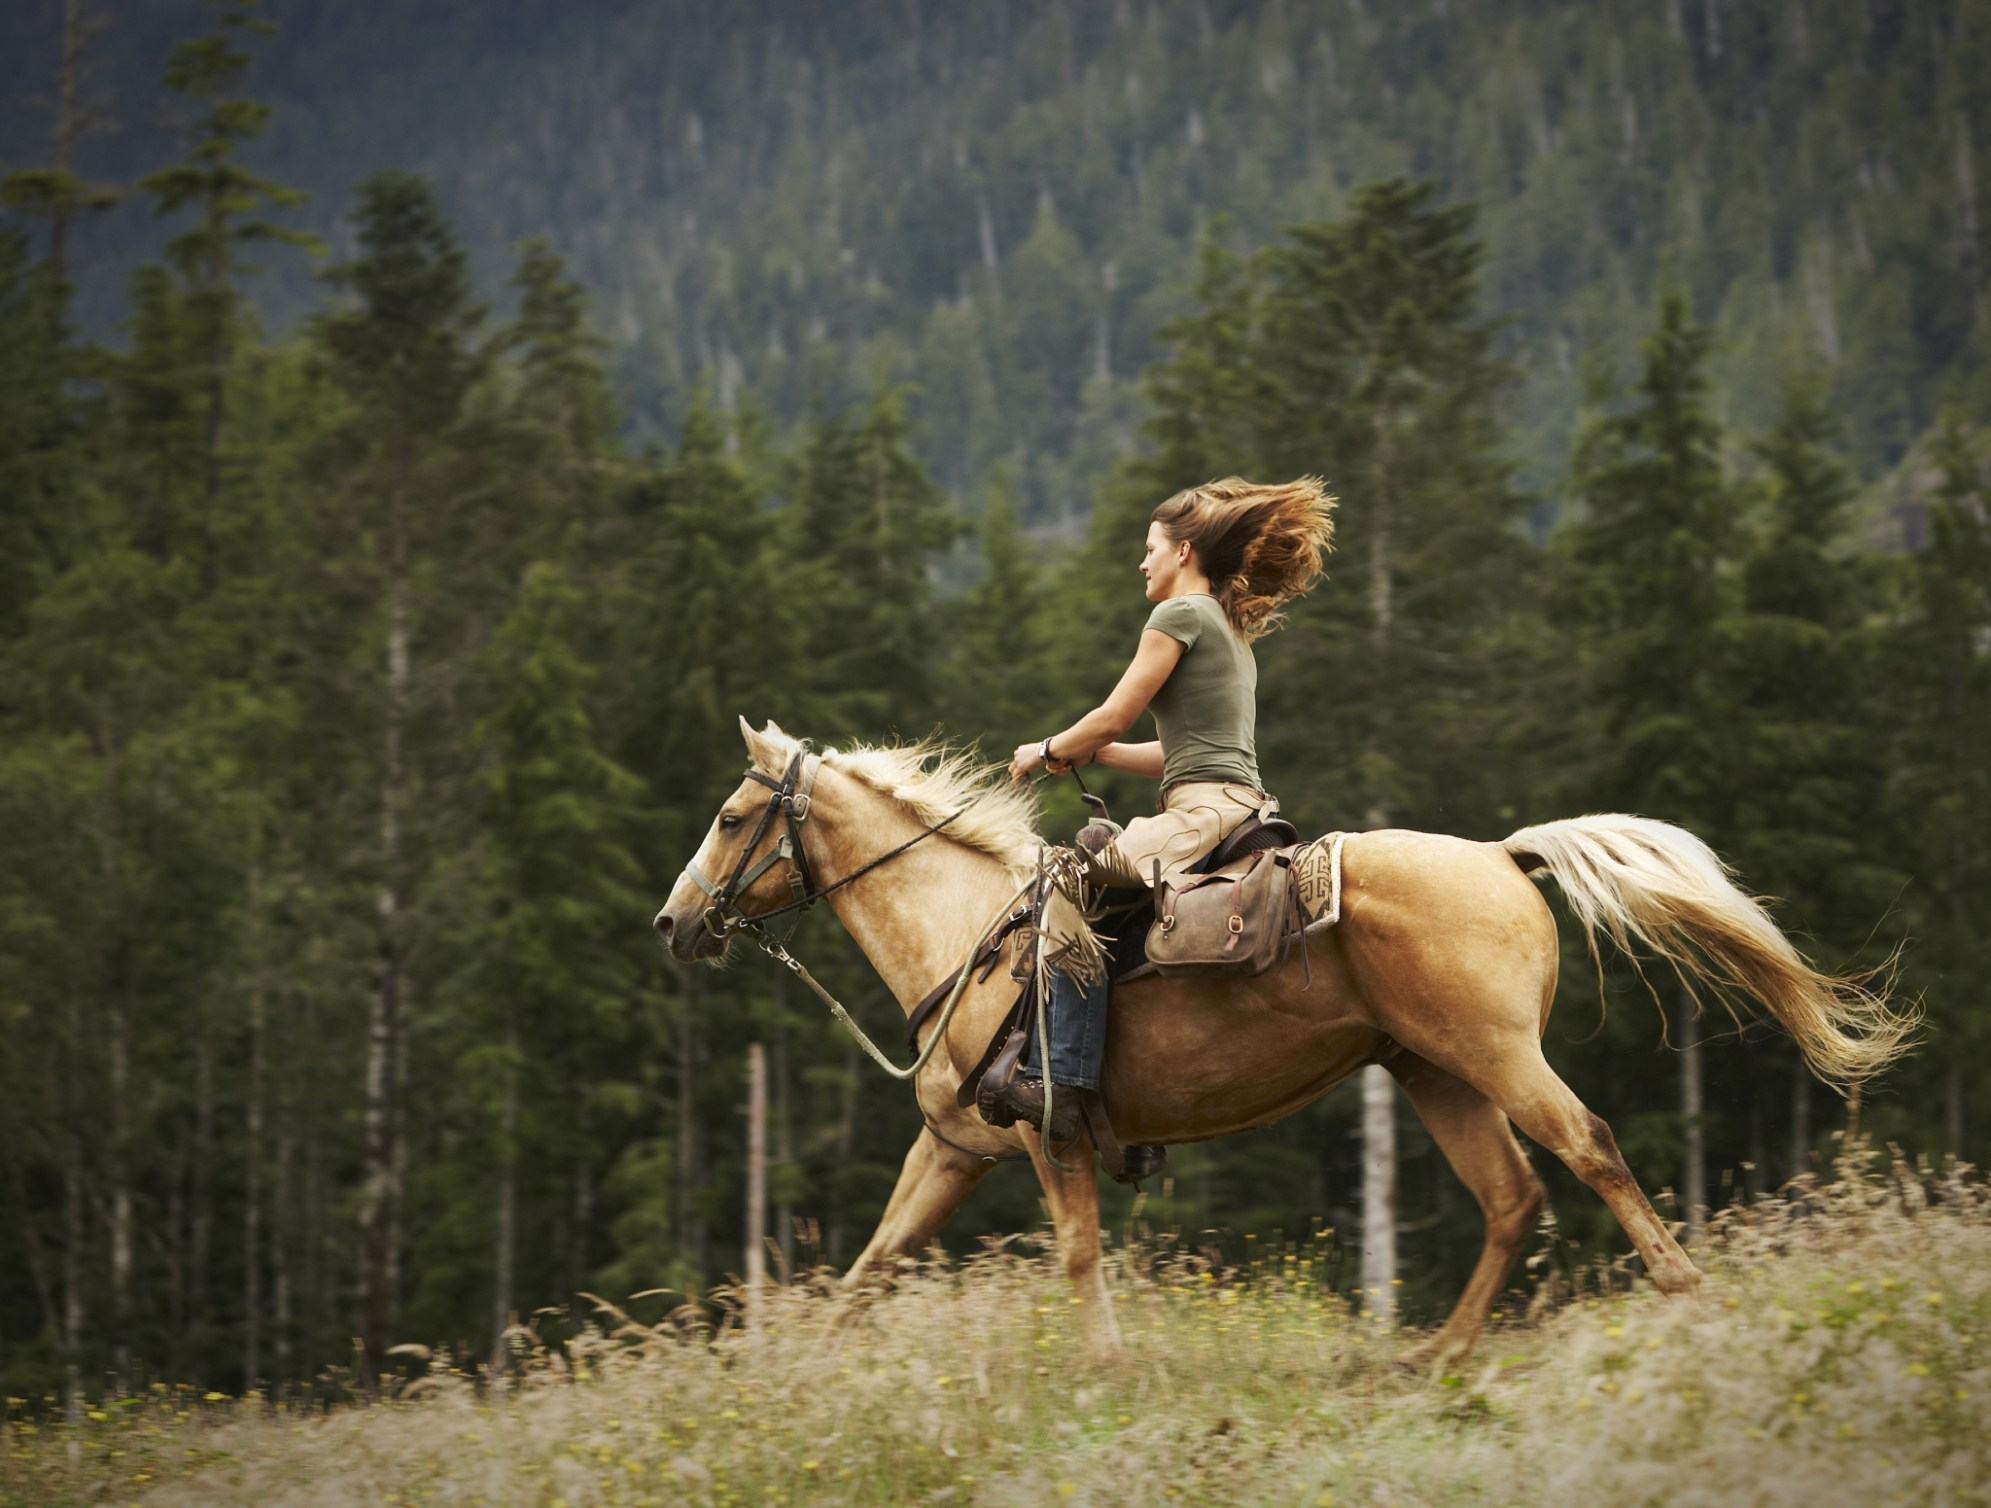 6 Health Benefits of Riding a Horse